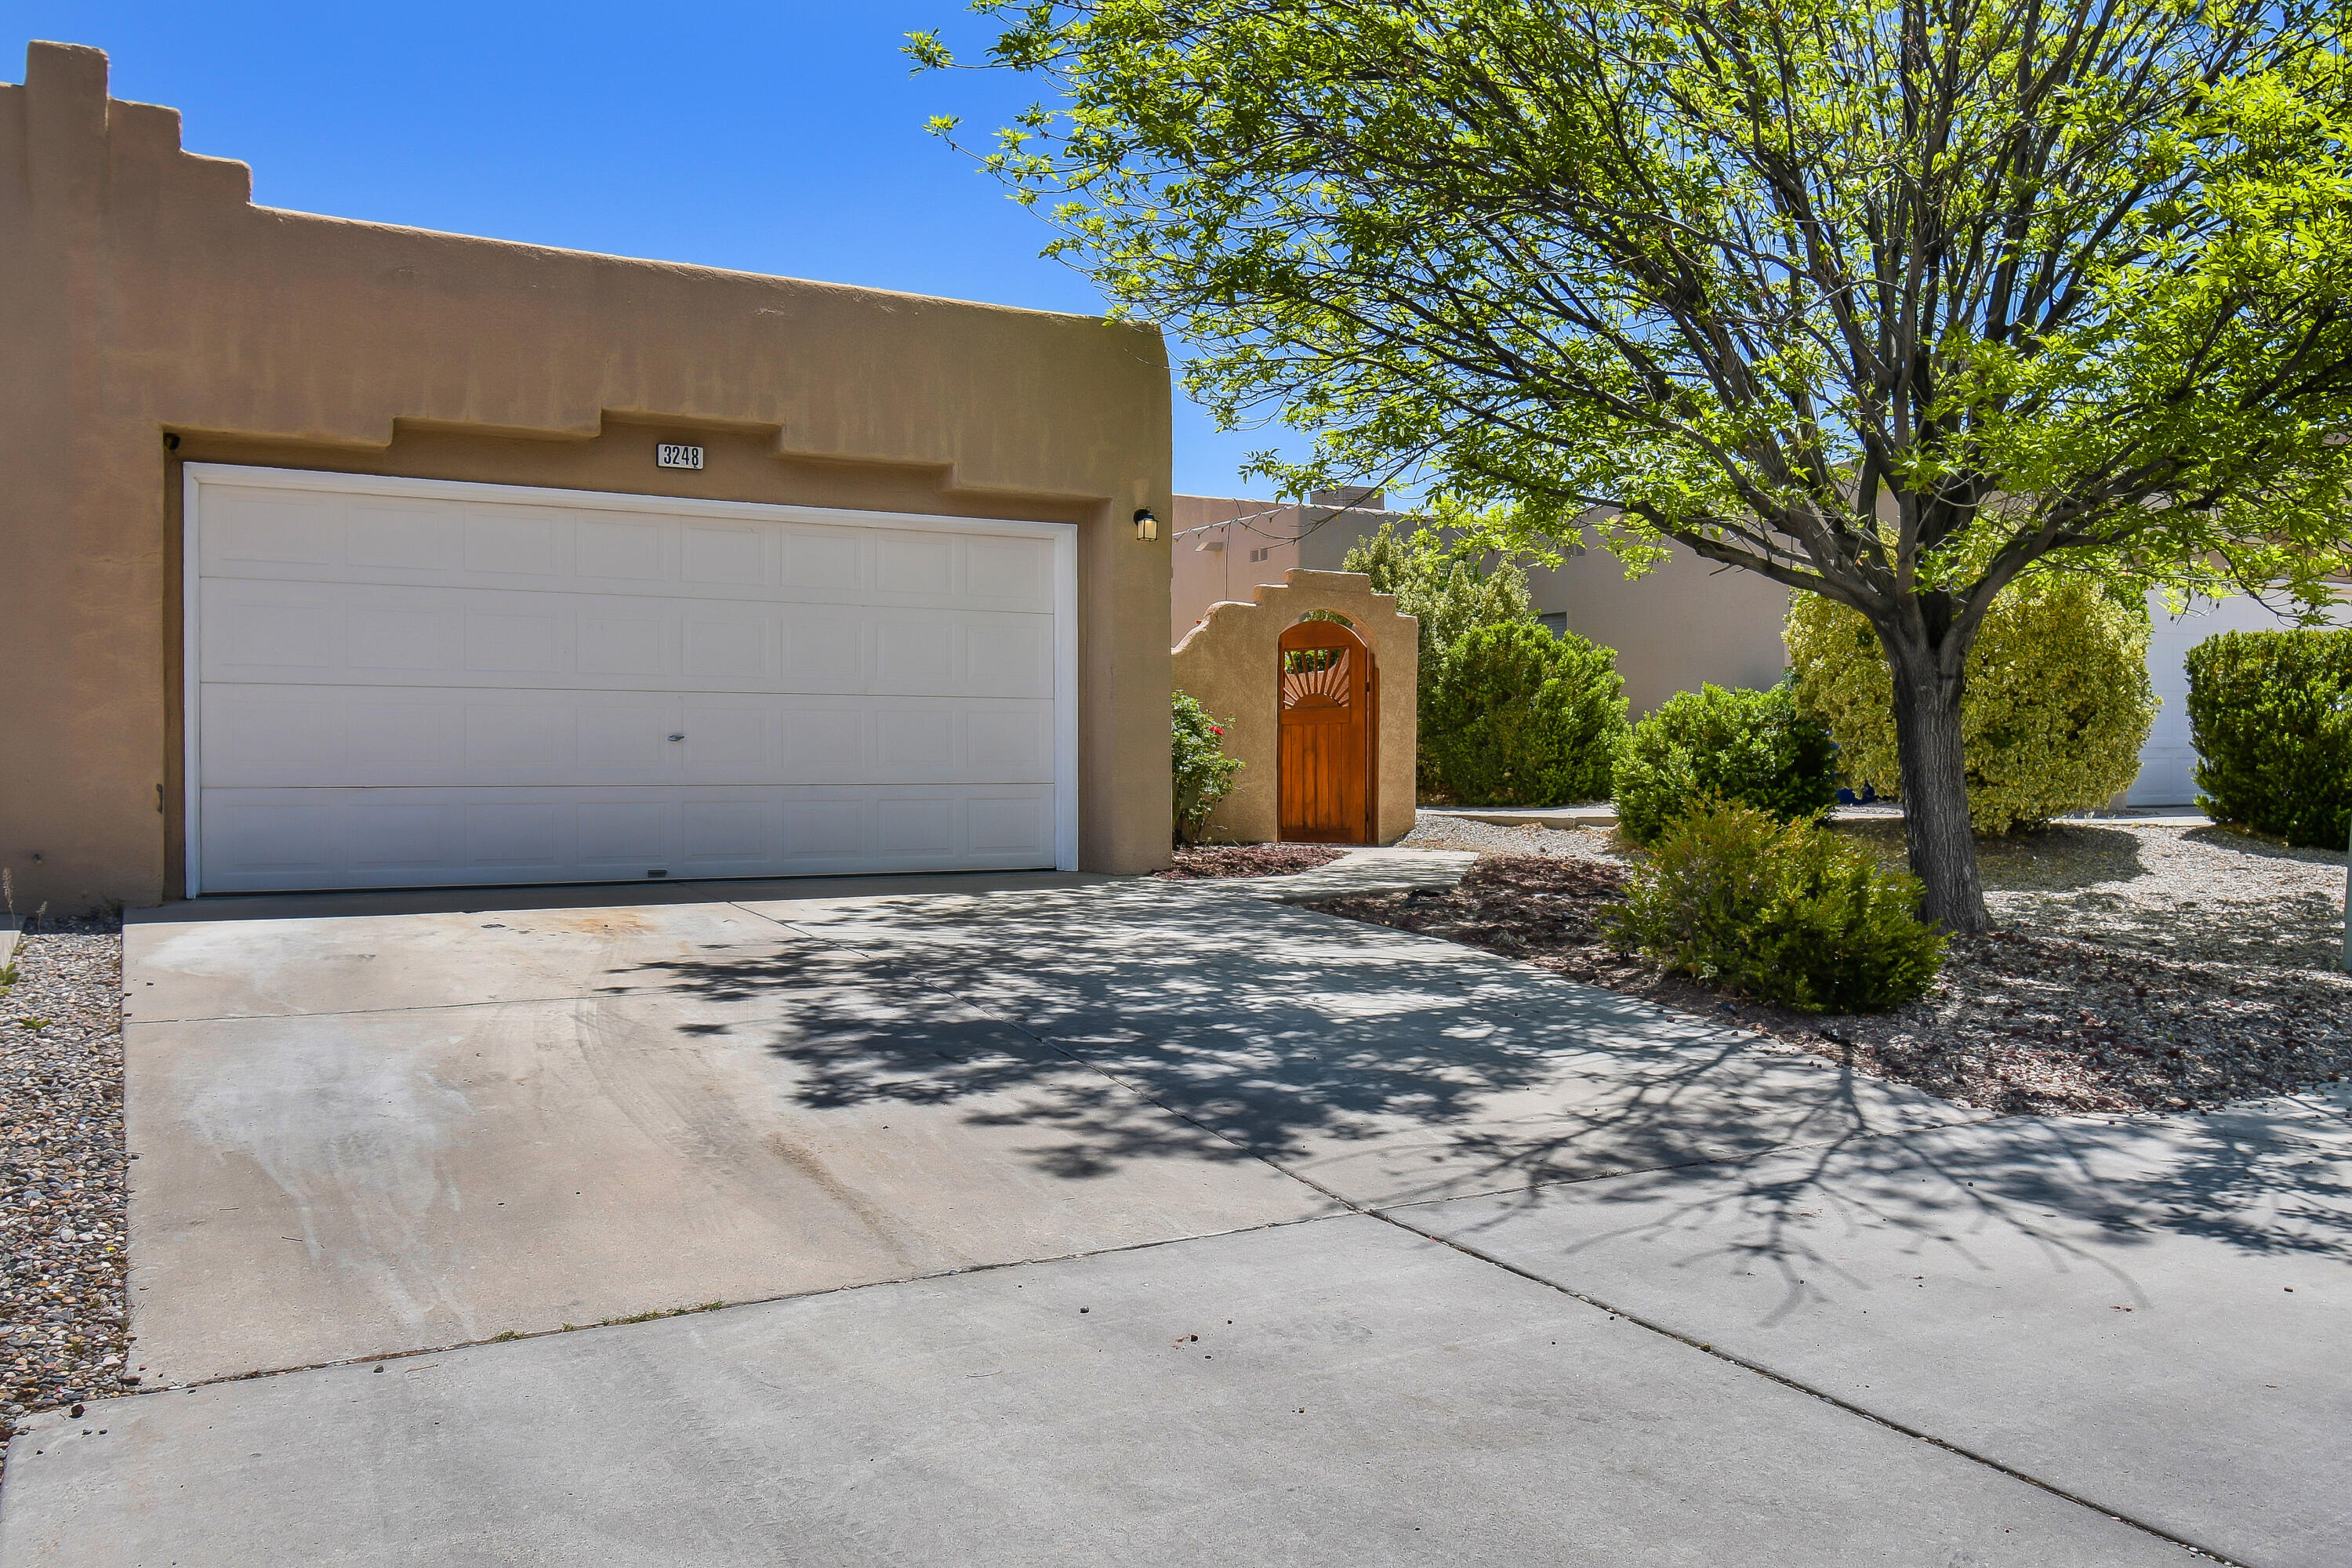 Nestled next to the historic and picturesque petroglyphs, enjoy living with cozy convenience in this open, bright and inviting 3 bedroom / 2 bath home.  The landscaped front courtyard welcomes you to step into comfortable living space with durable faux wood laminate floors, fireplace and tile kitchen.  The large private backyard will be an ideal setting for enjoying cool nights by the wood burning kiva or entertaining friends under your covered patio.  Stroll through nearby Rinconda Park or enjoy plenty of close-by shopping, restaurants and golf course.  Easy access to I-40 means you can travel from your serine environment to access everything Albuquerque offers.   Whether you work hard, play hard or just like to relax, this home will let you do it all with comfort and convenience.